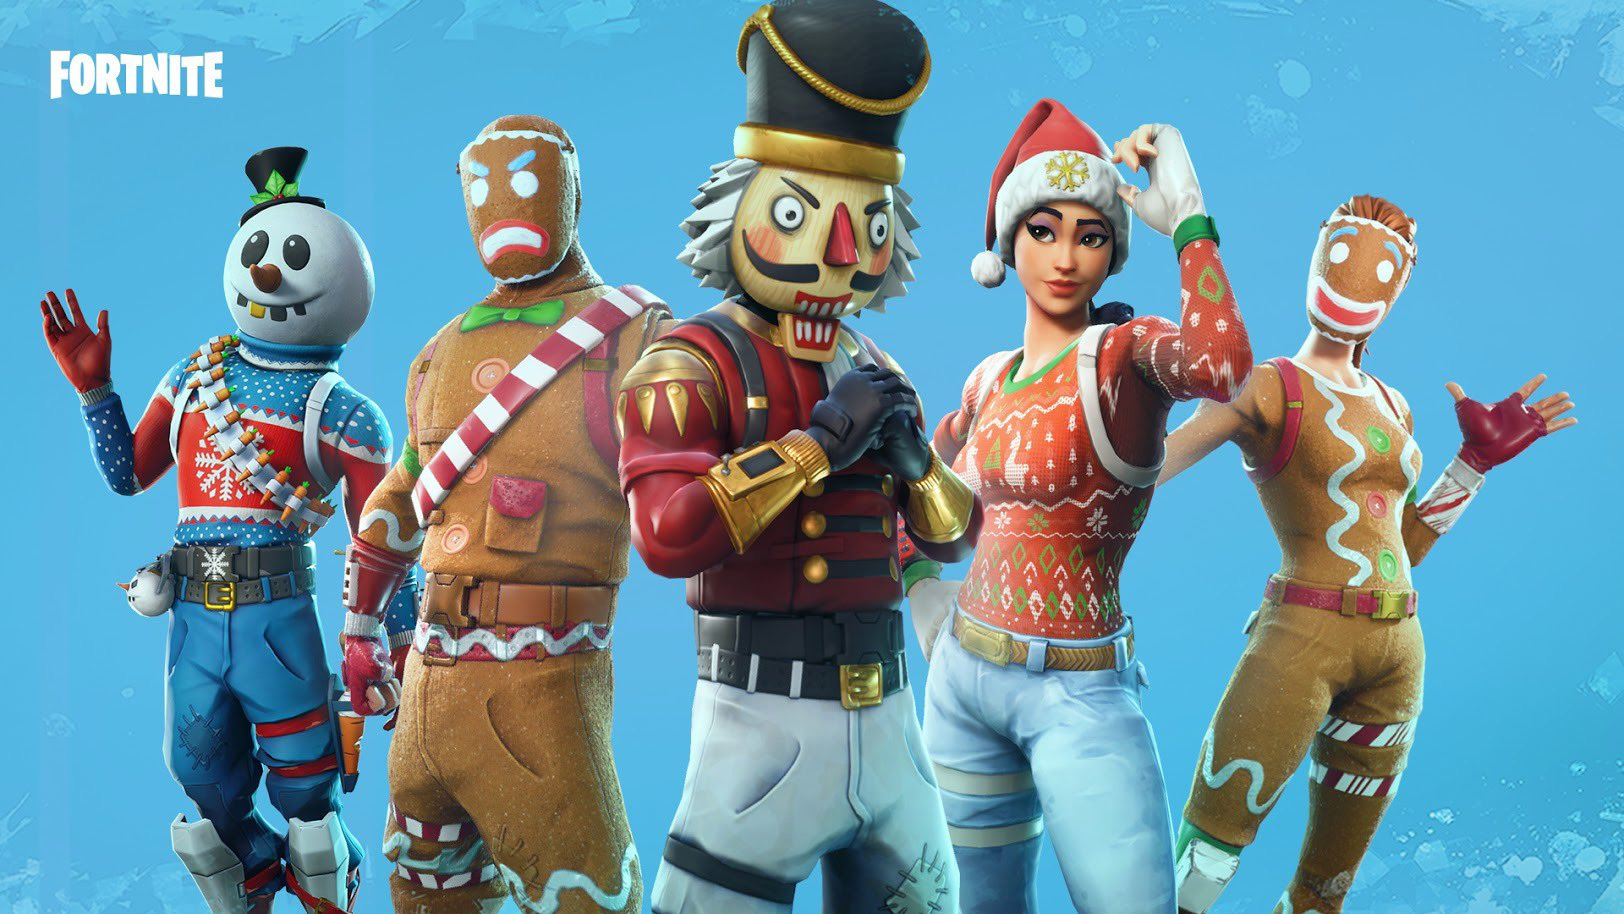 fortnite on twitter happy holidays from everyone on the fortnite team fortnite on twitter happy holidays